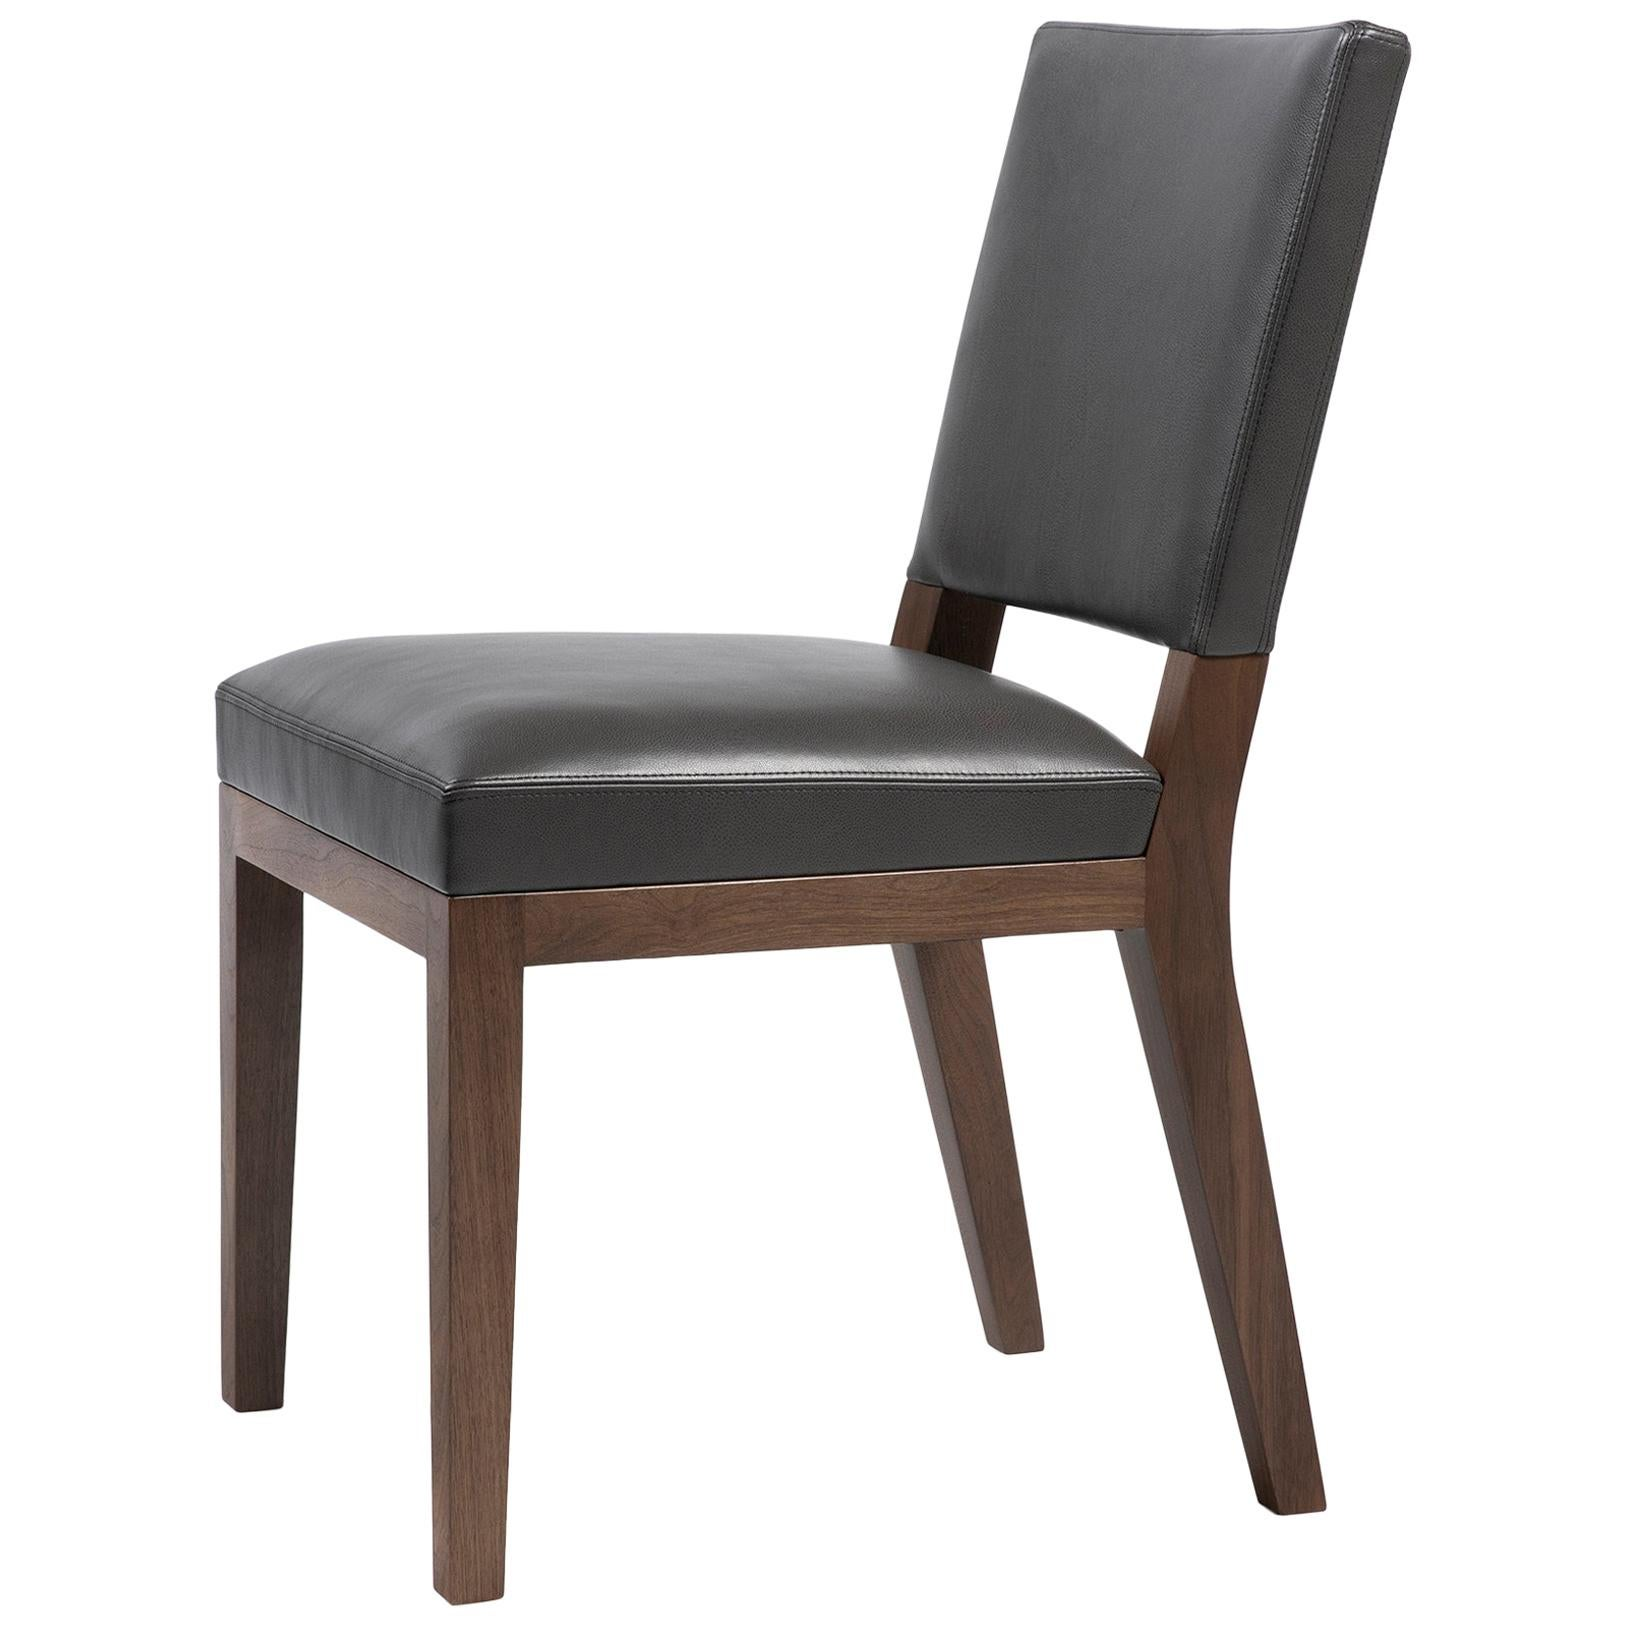 HOLLY HUNT Luna Dining Chair in Walnut Dusk Finish with Upholstered Seat